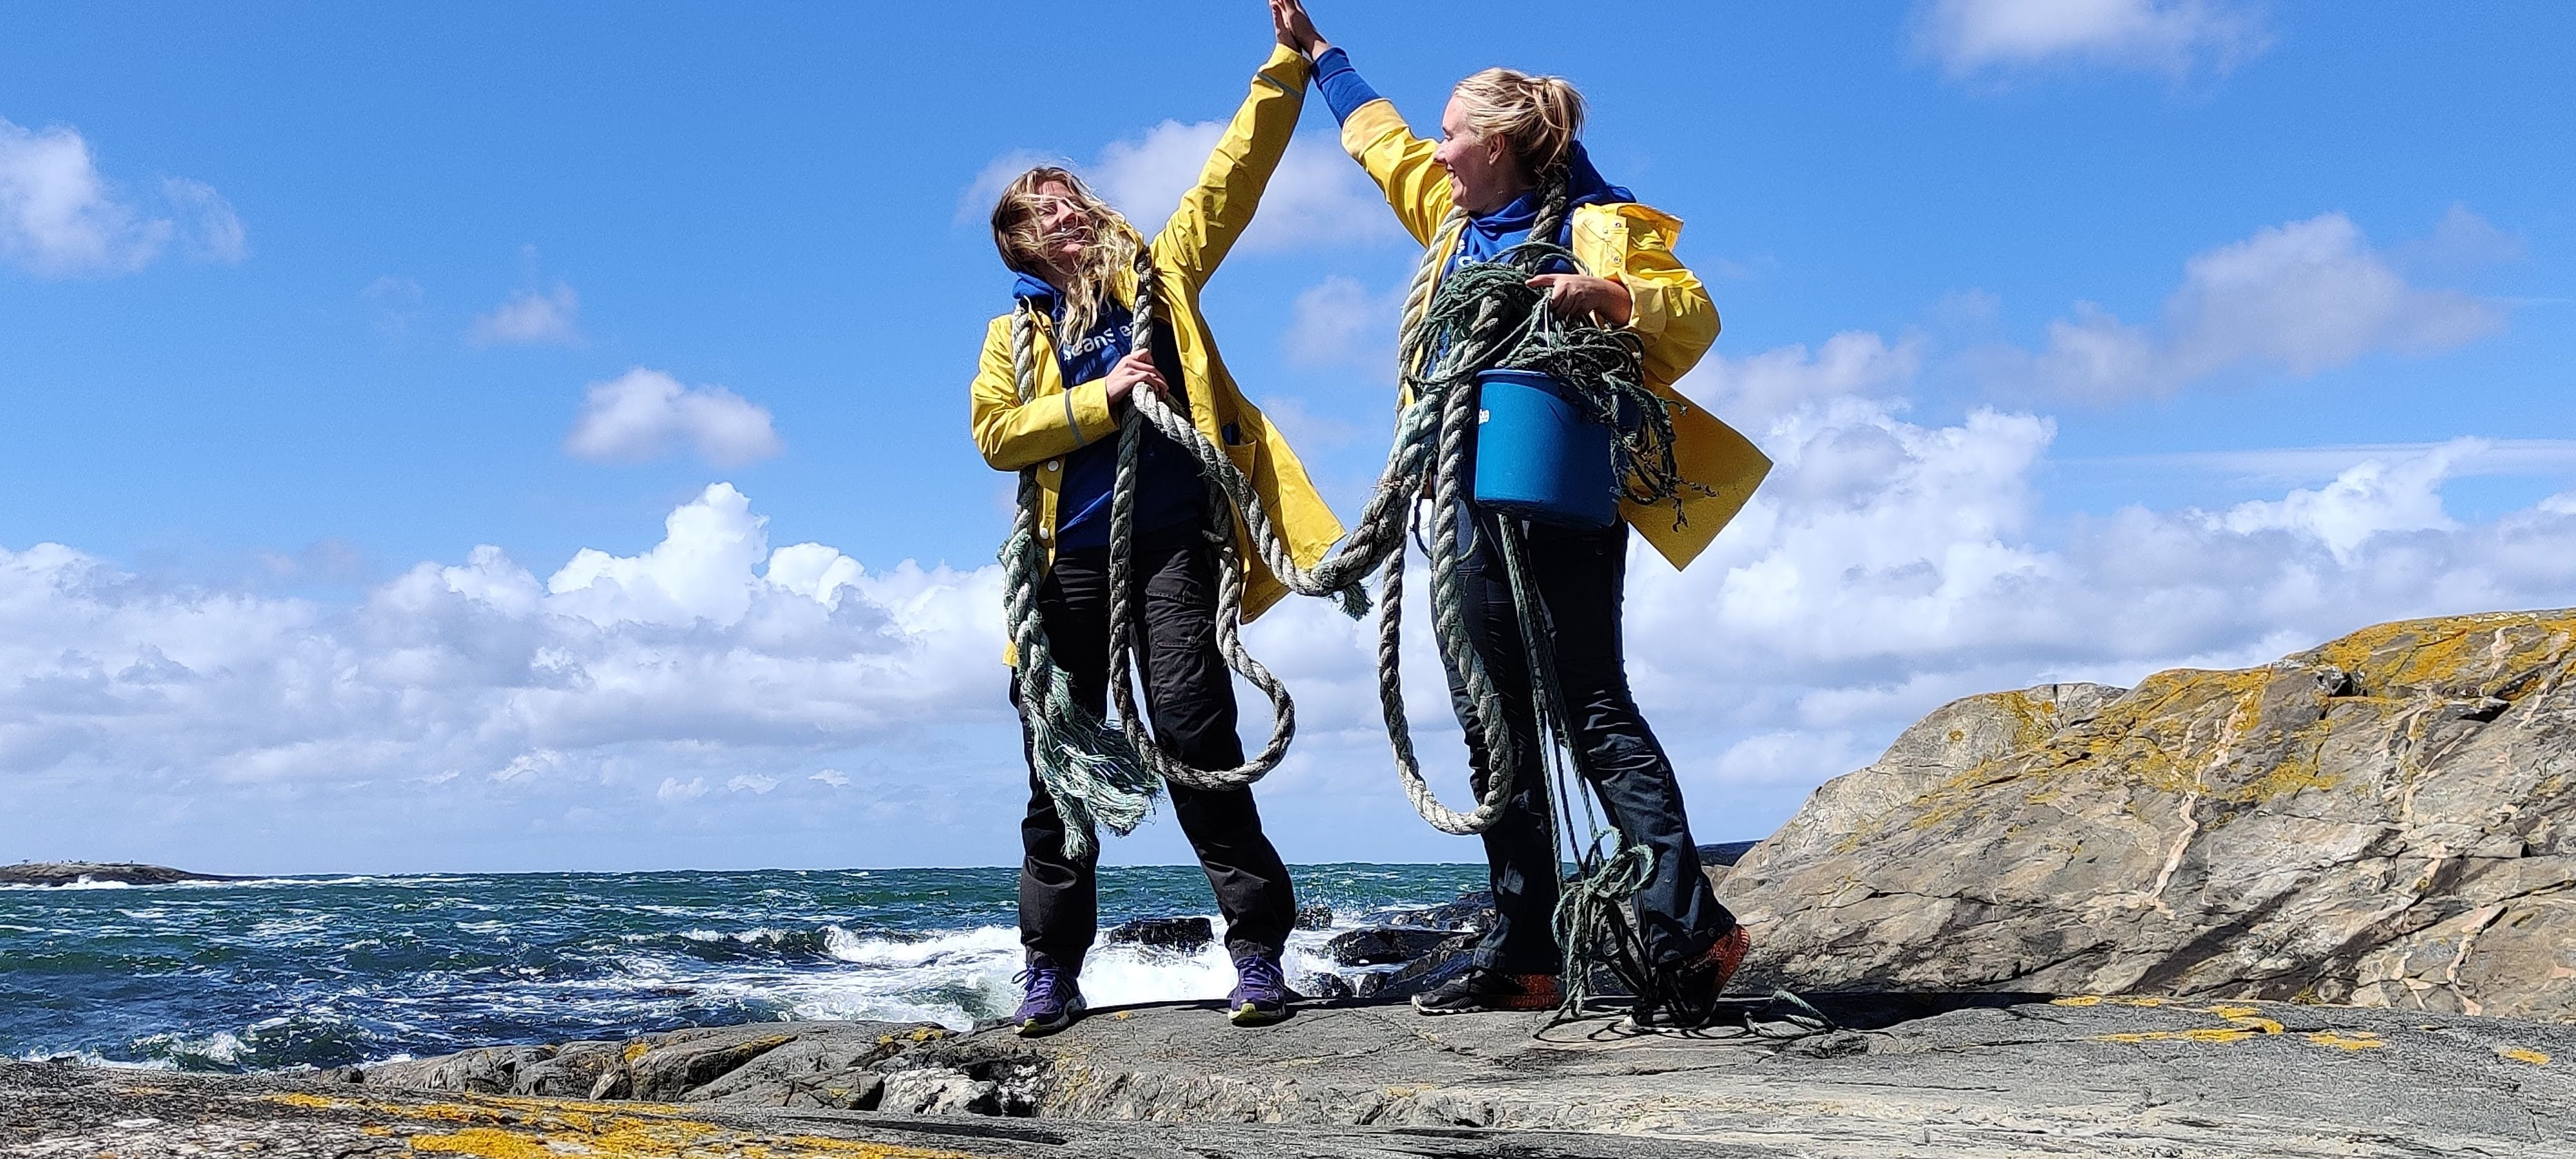 CleanSea removing discarded fishing gear from the ocean, Sweden